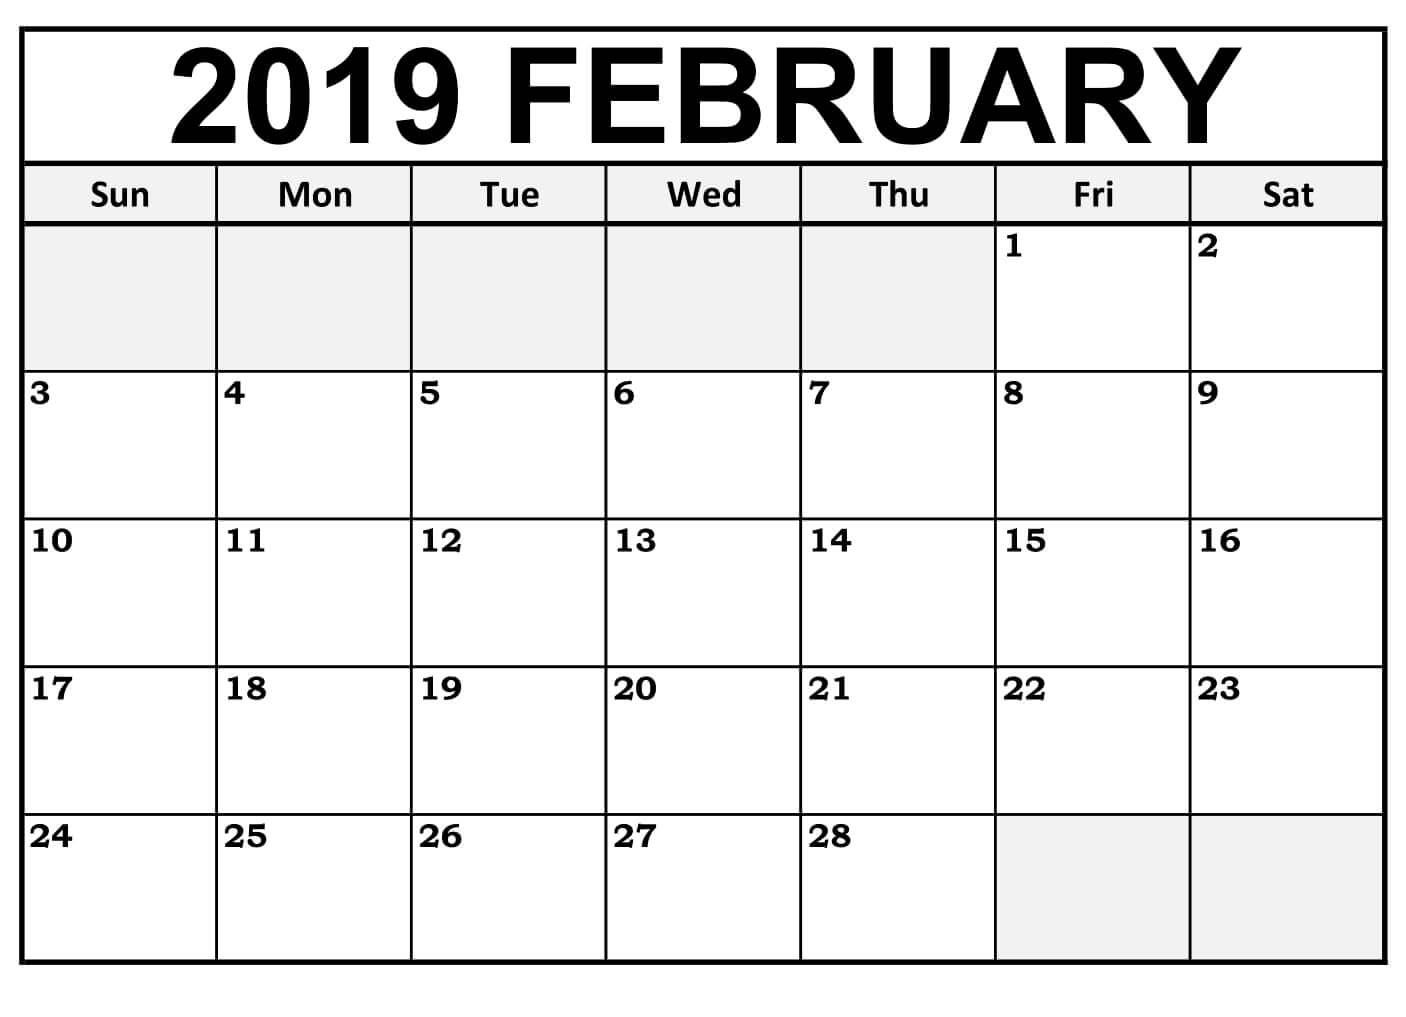 February 2019 Calendar Printable Editable - Free Printable Calendar throughout February Calendar Printable Template Blank